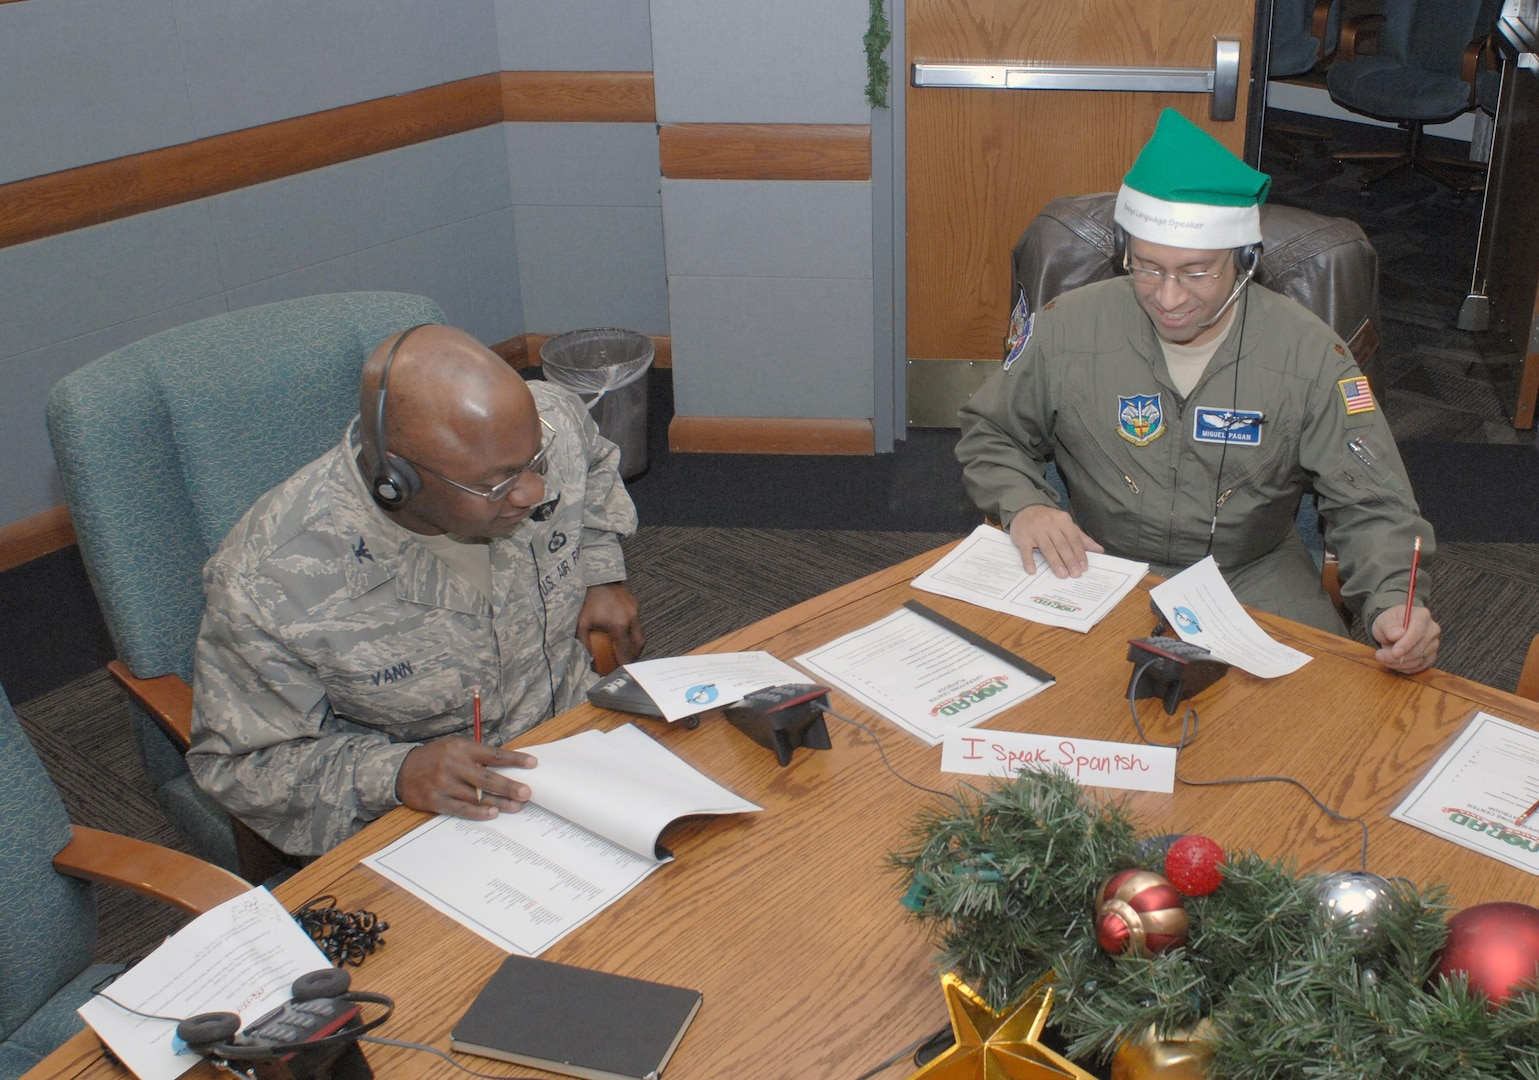 PETERSON AIR FORCE BASE, Colo. - NORAD Tracks Santa volunteers Col. Alvin Vann and Maj. Miguel Pagan answer phone calls from people across the globe looking for Santa. The green hat Pagan is wearing signifies that he speaks a second language and is available to translate should another volunteer receive a call in that language. (U.S. Air Force photo by Tech. Sgt. Thomas J. Doscher)